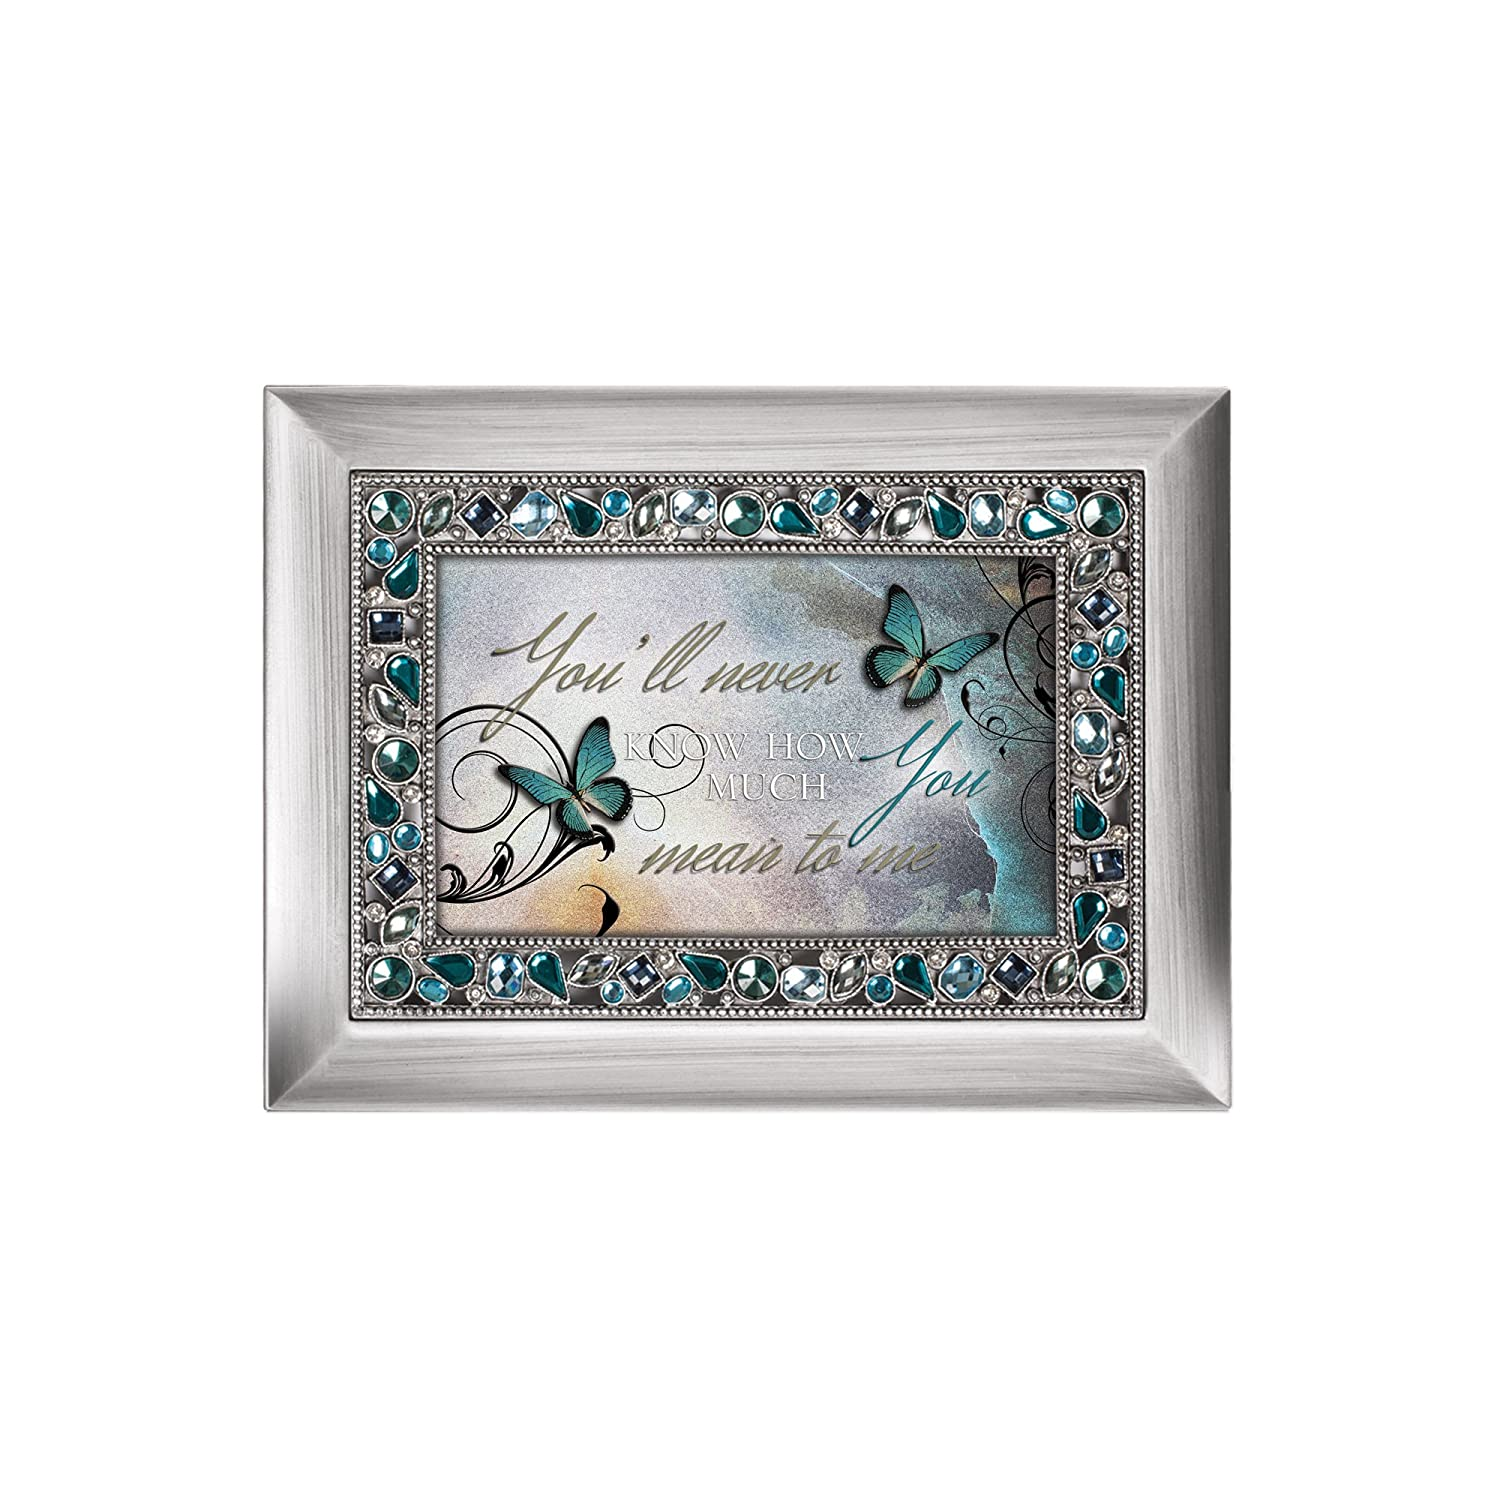 Plays What a Wonderful World JM104C Cottage Garden Youll Never Know How Much You Mean to Me Musical Music Jewelry Box